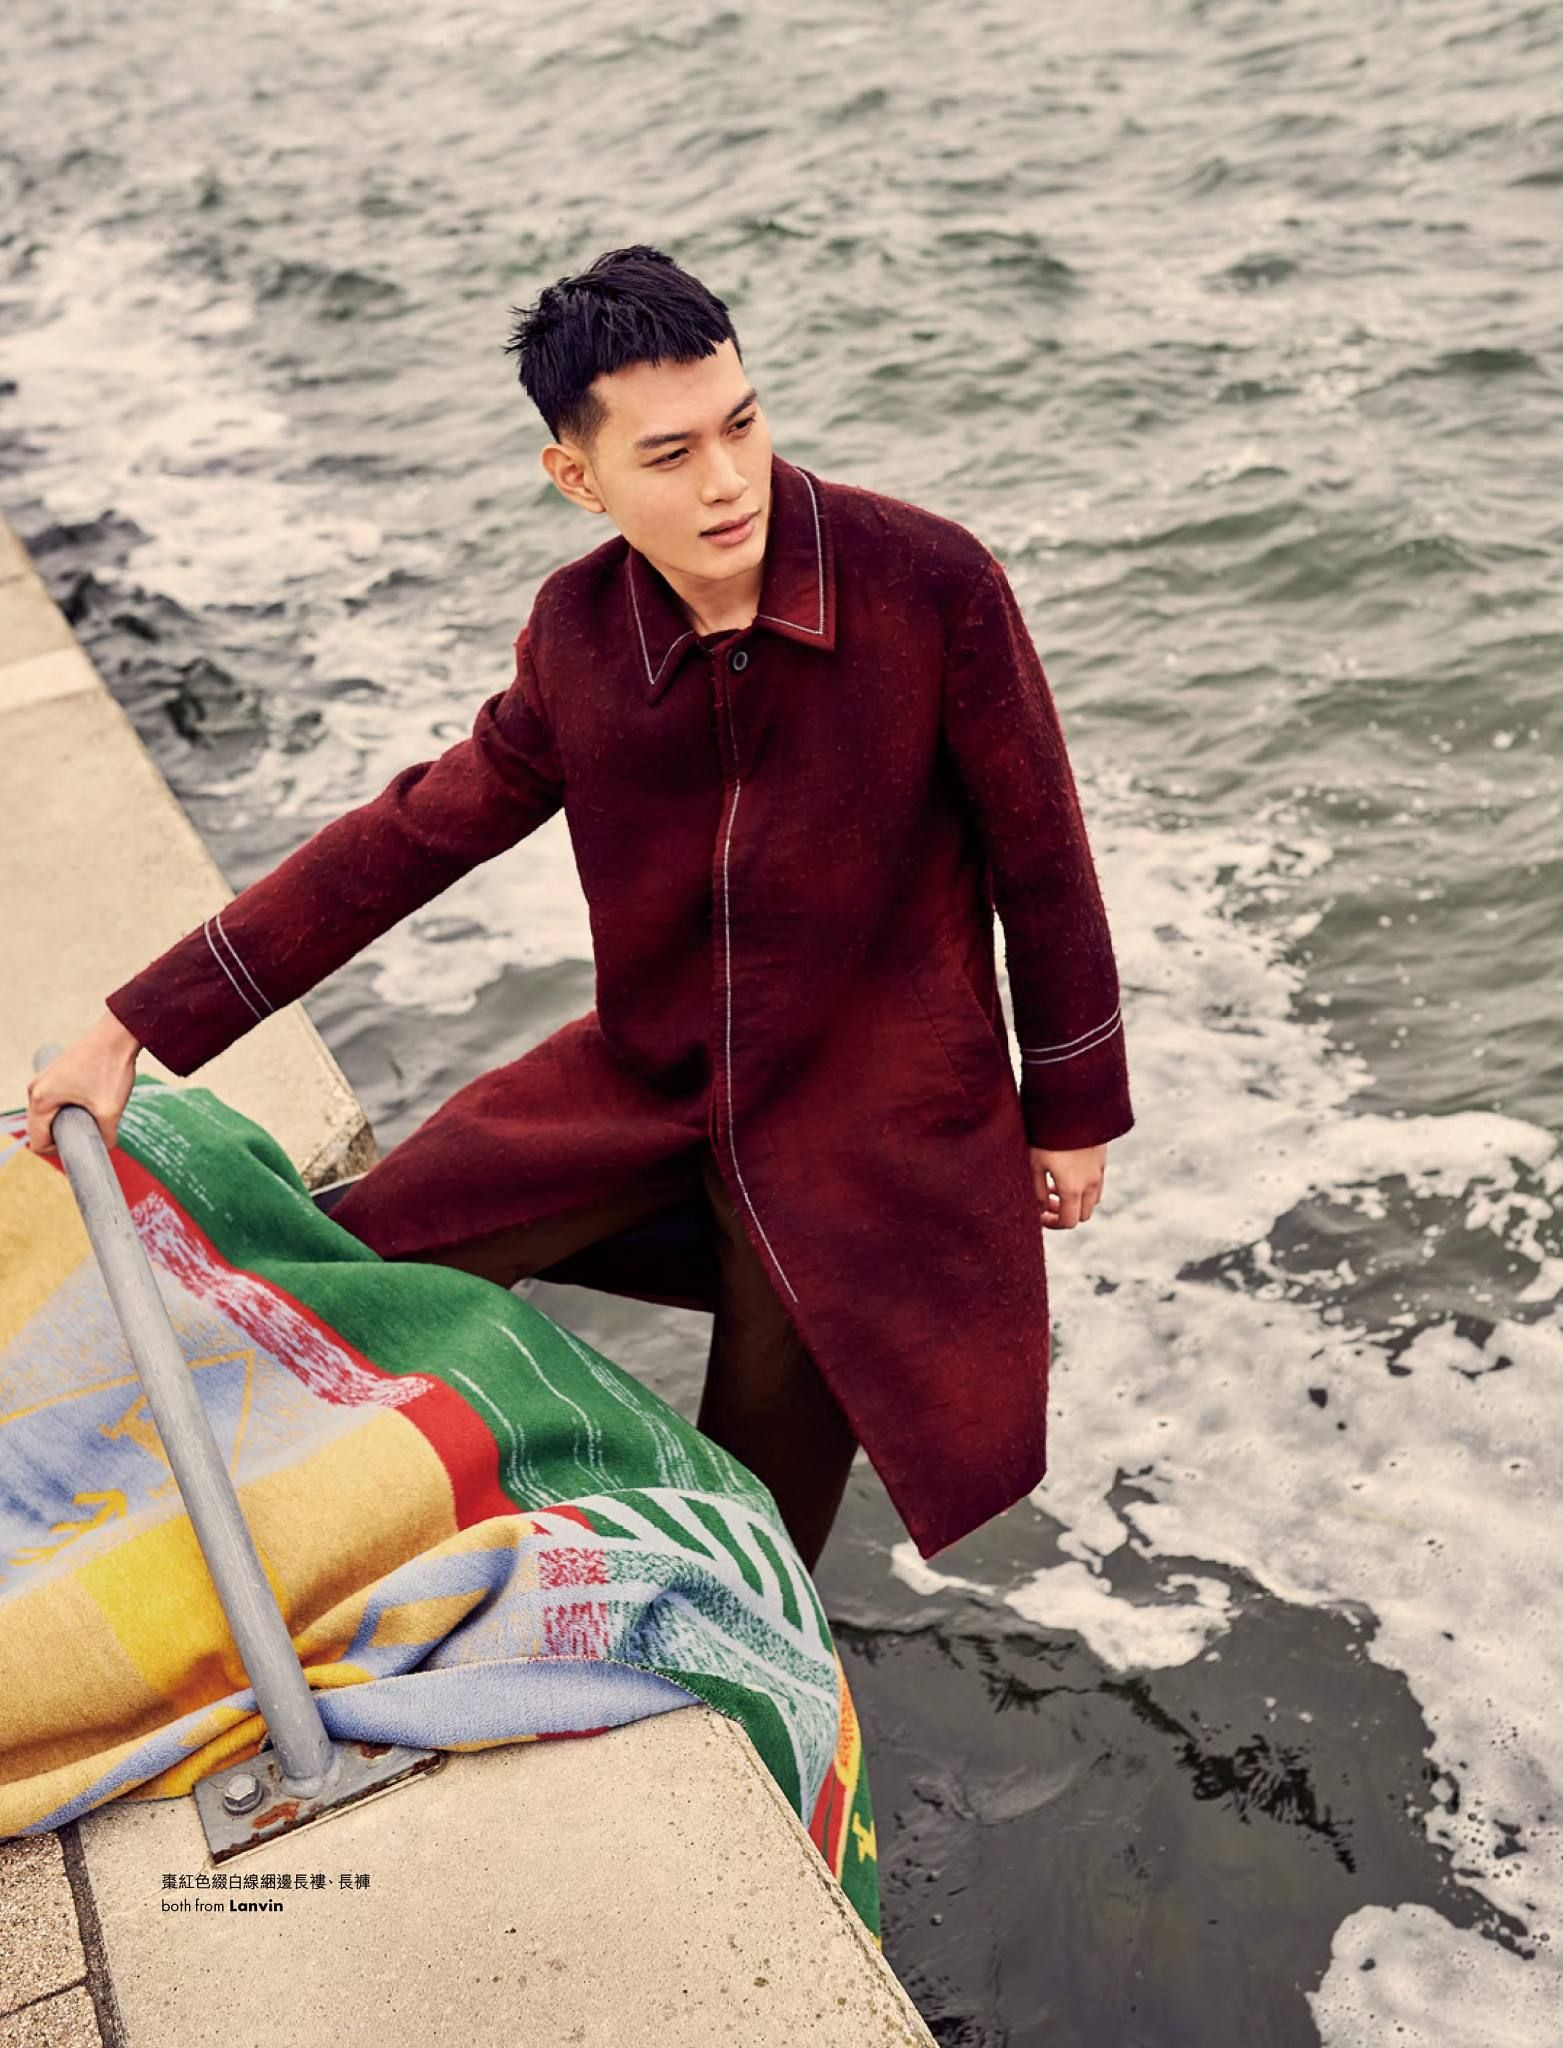 Lukasz Wolejko-Wolejszo photographs Pace Chen in Lanvin for ELLE Men HK styled by Fabiana Vardaro. Follow Lukasz's latest work on Facebook, Instagram and Twitter. You can now start pinning Lukasz's photos on our Pinterest boards while mention his name.